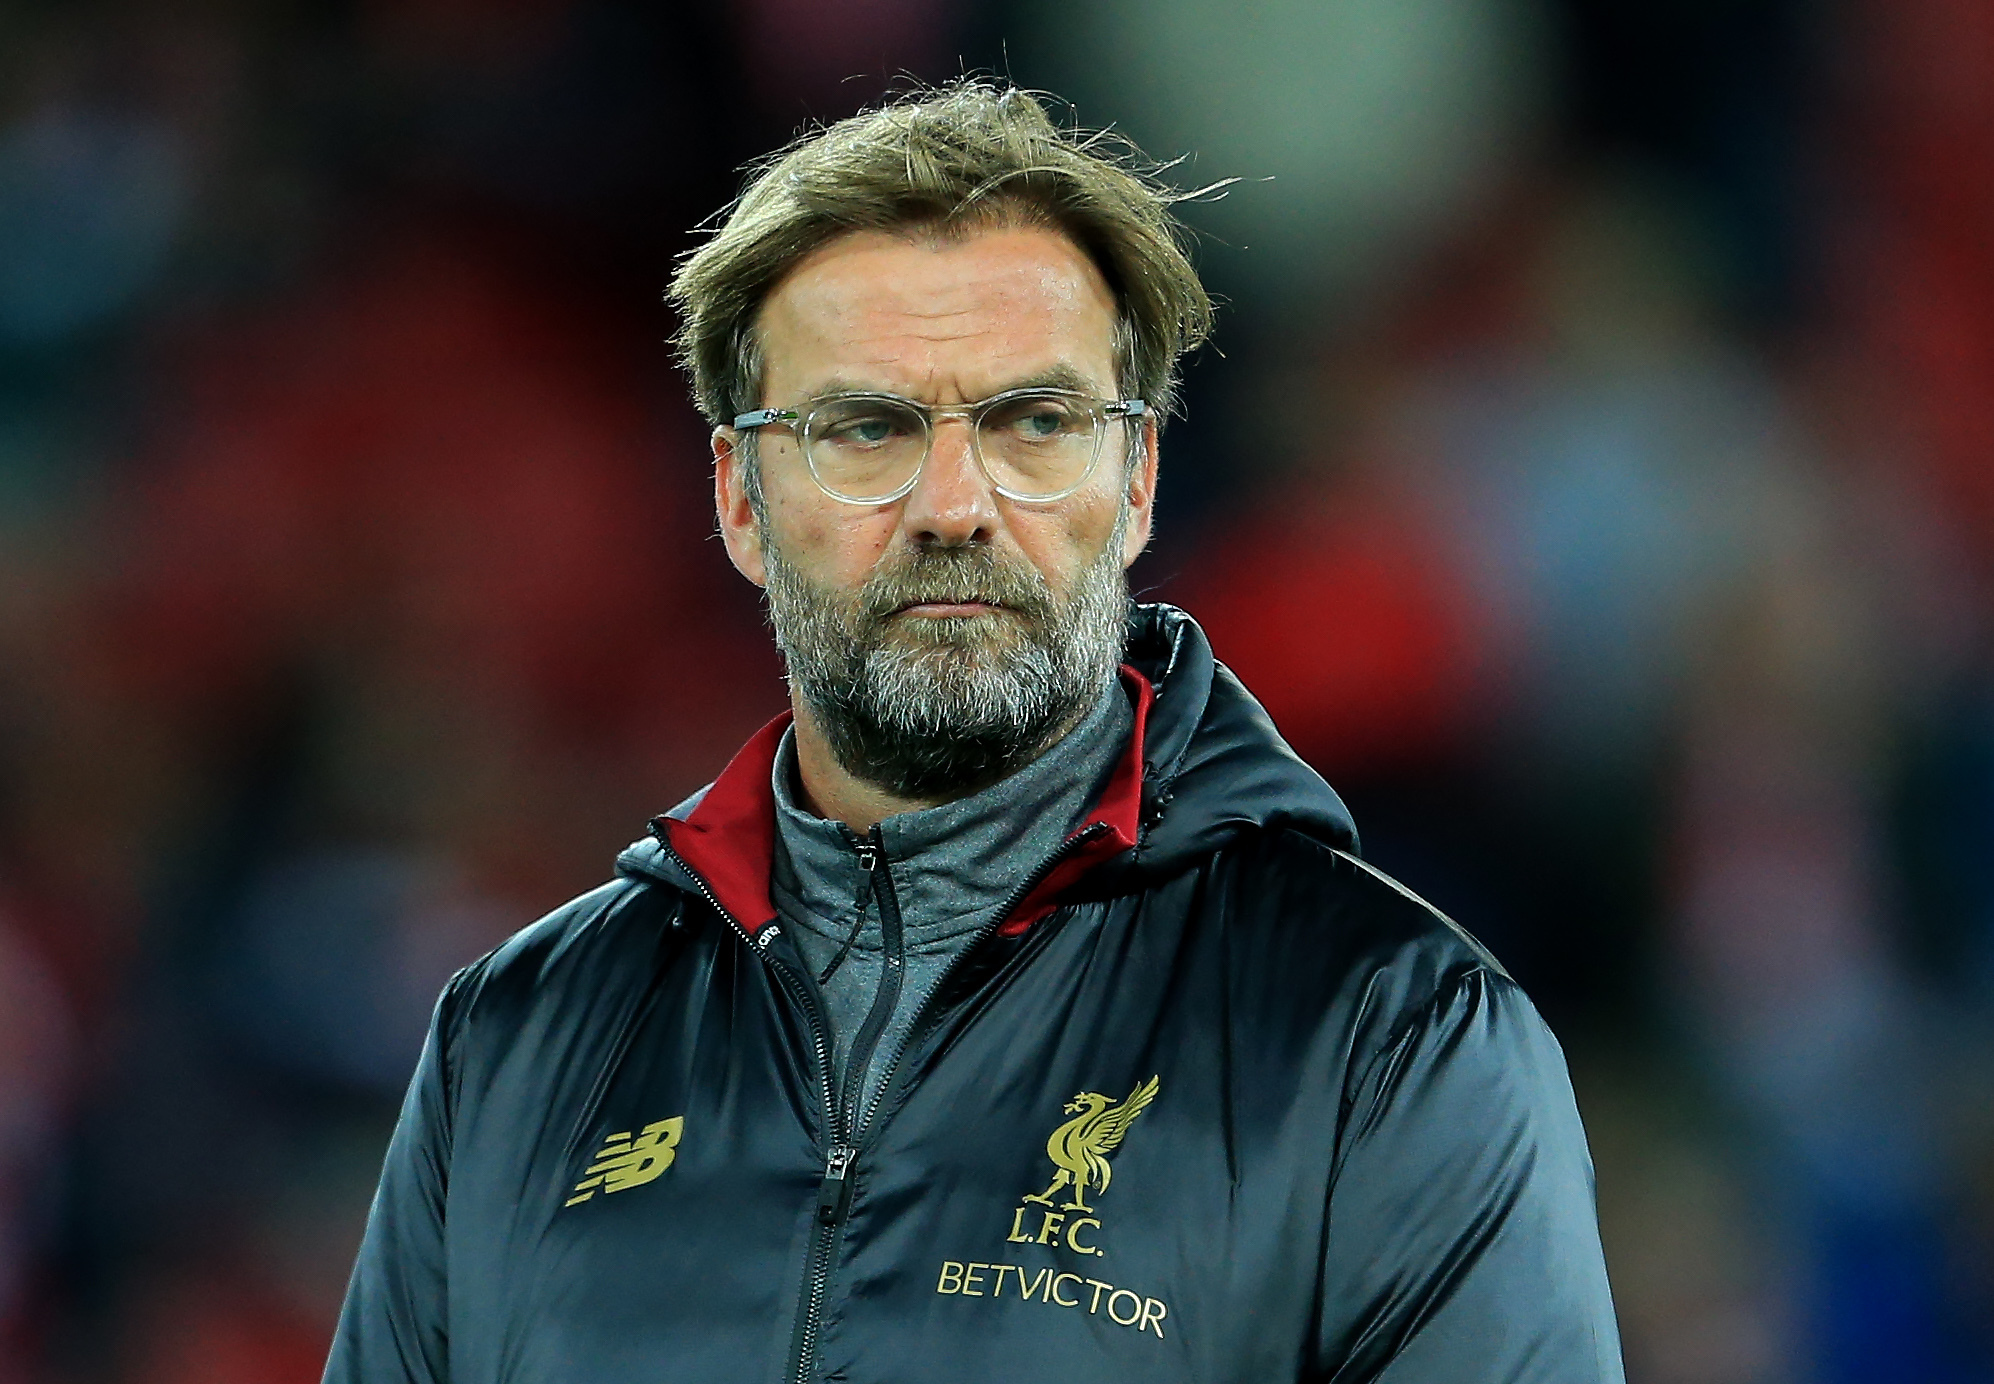 No, Liverpool would not be 'bottlers' for finishing second